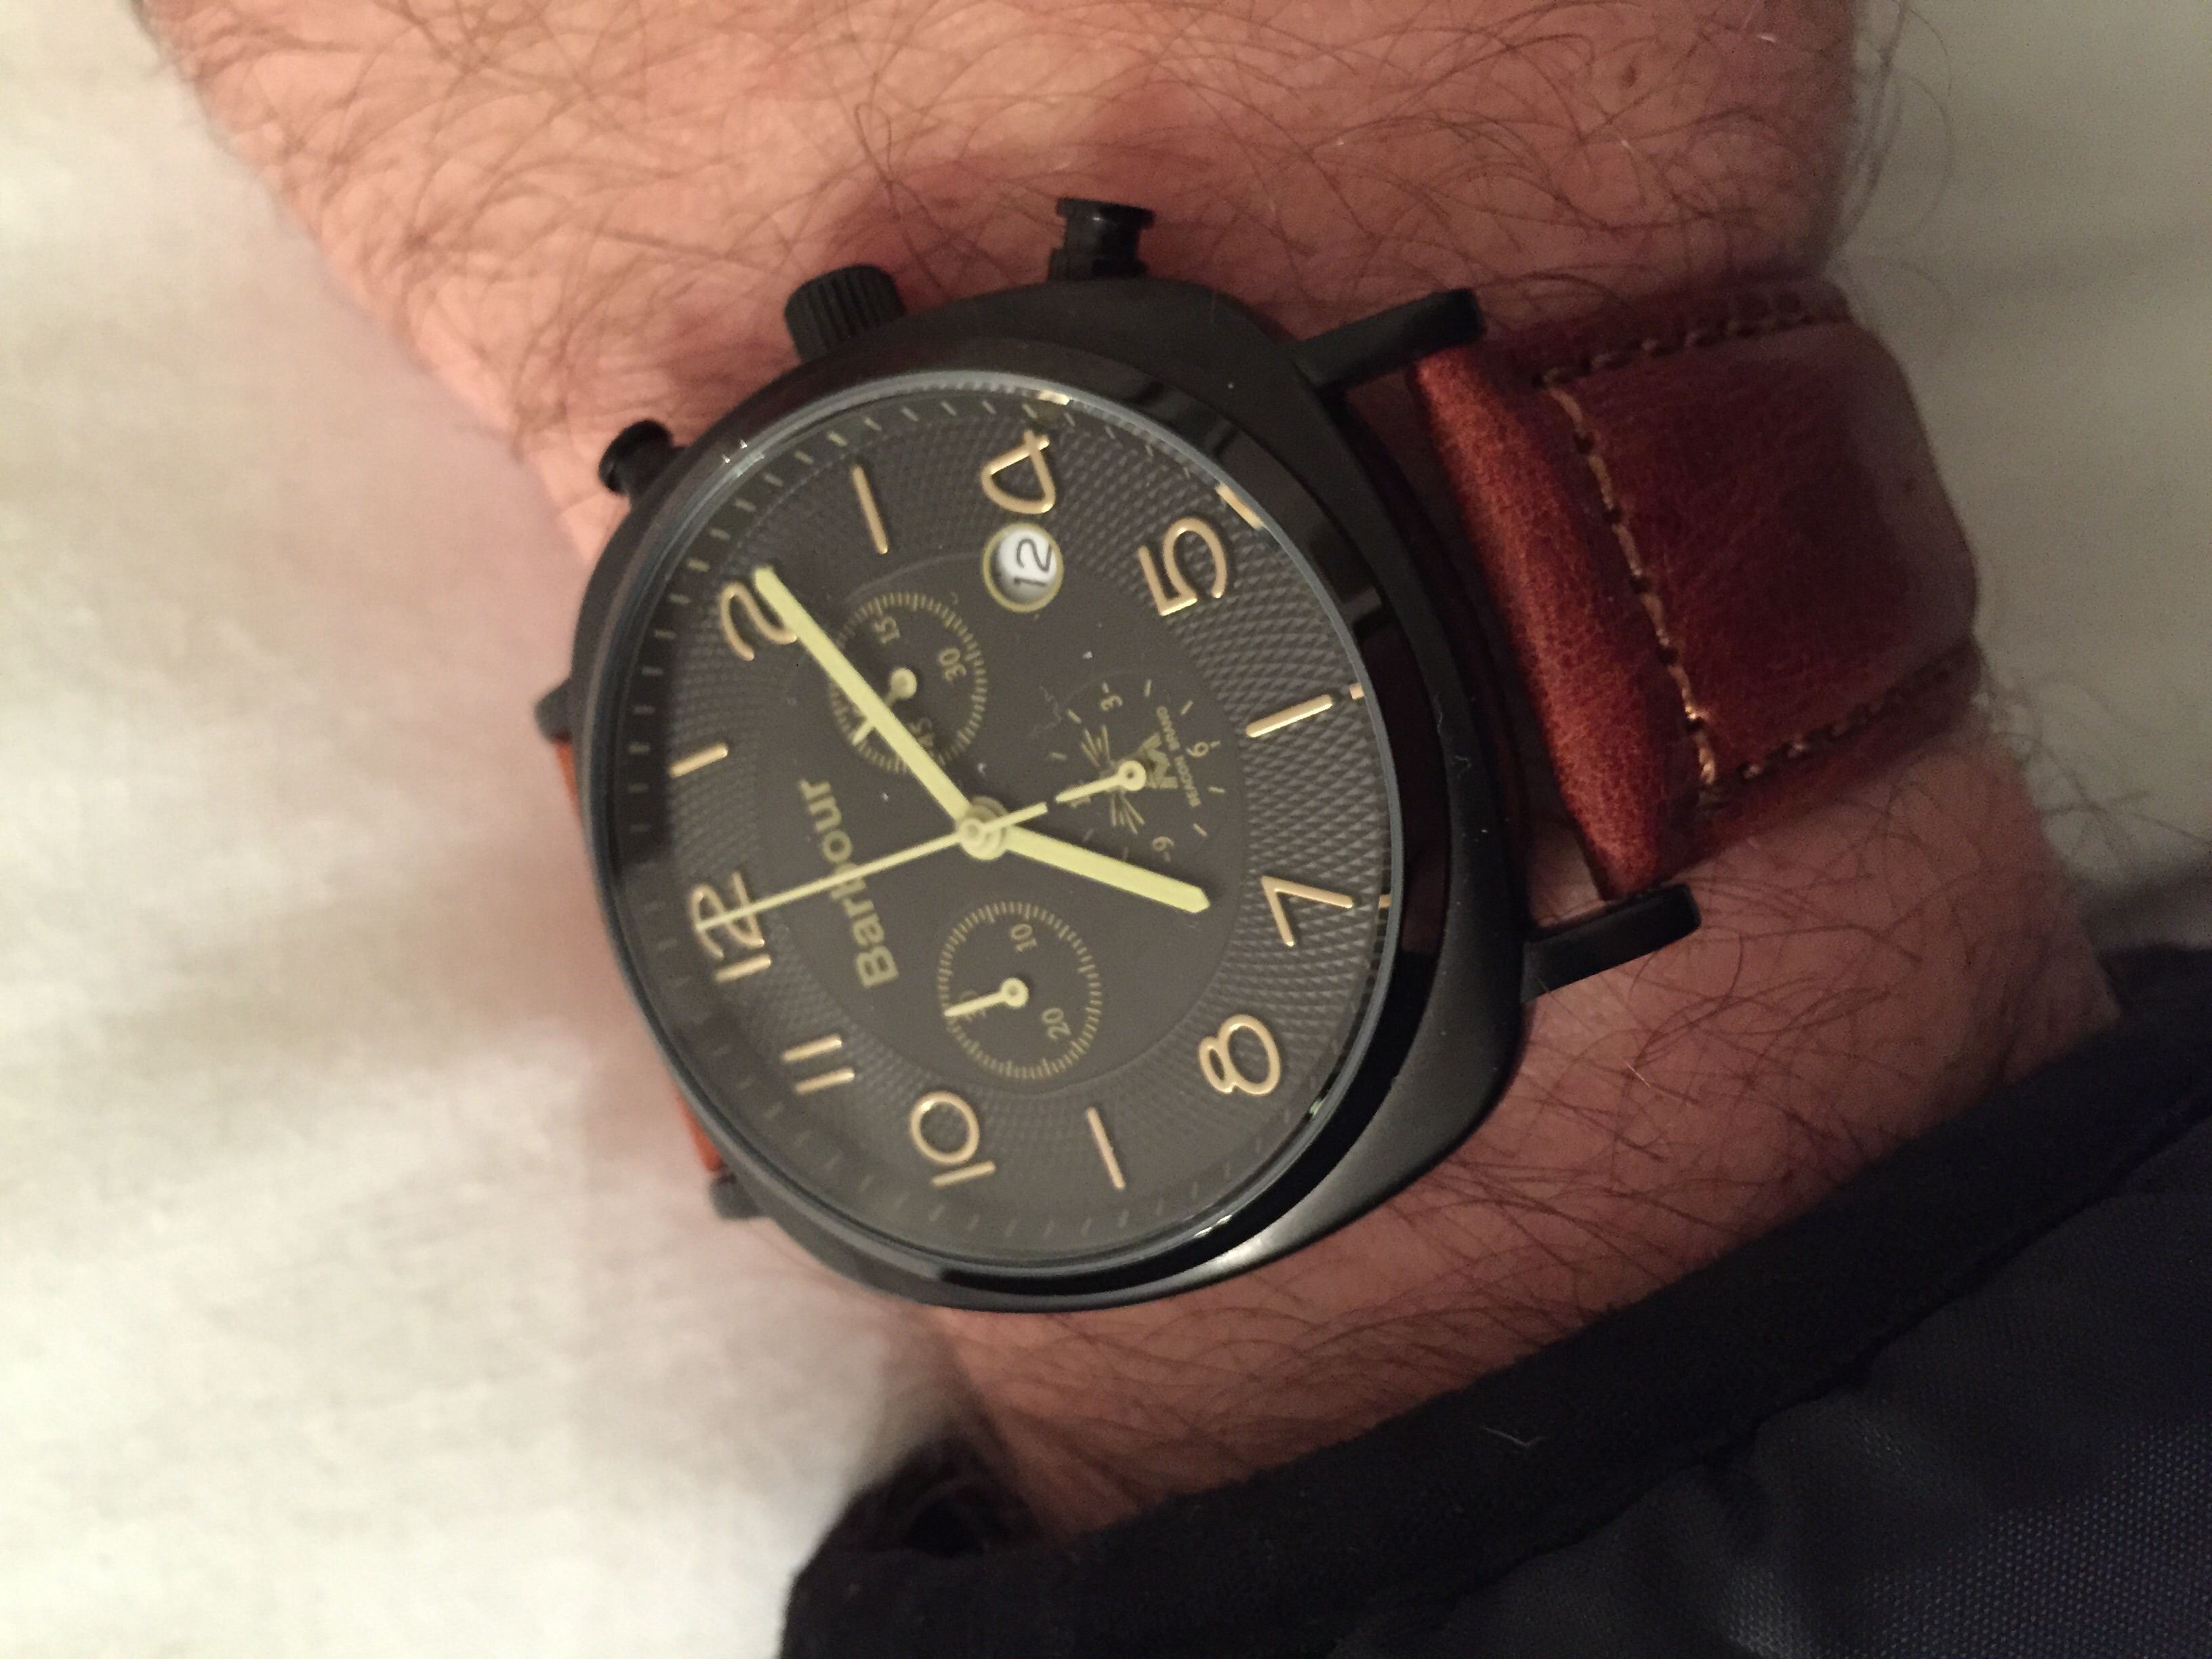 Barbour Watches on hand